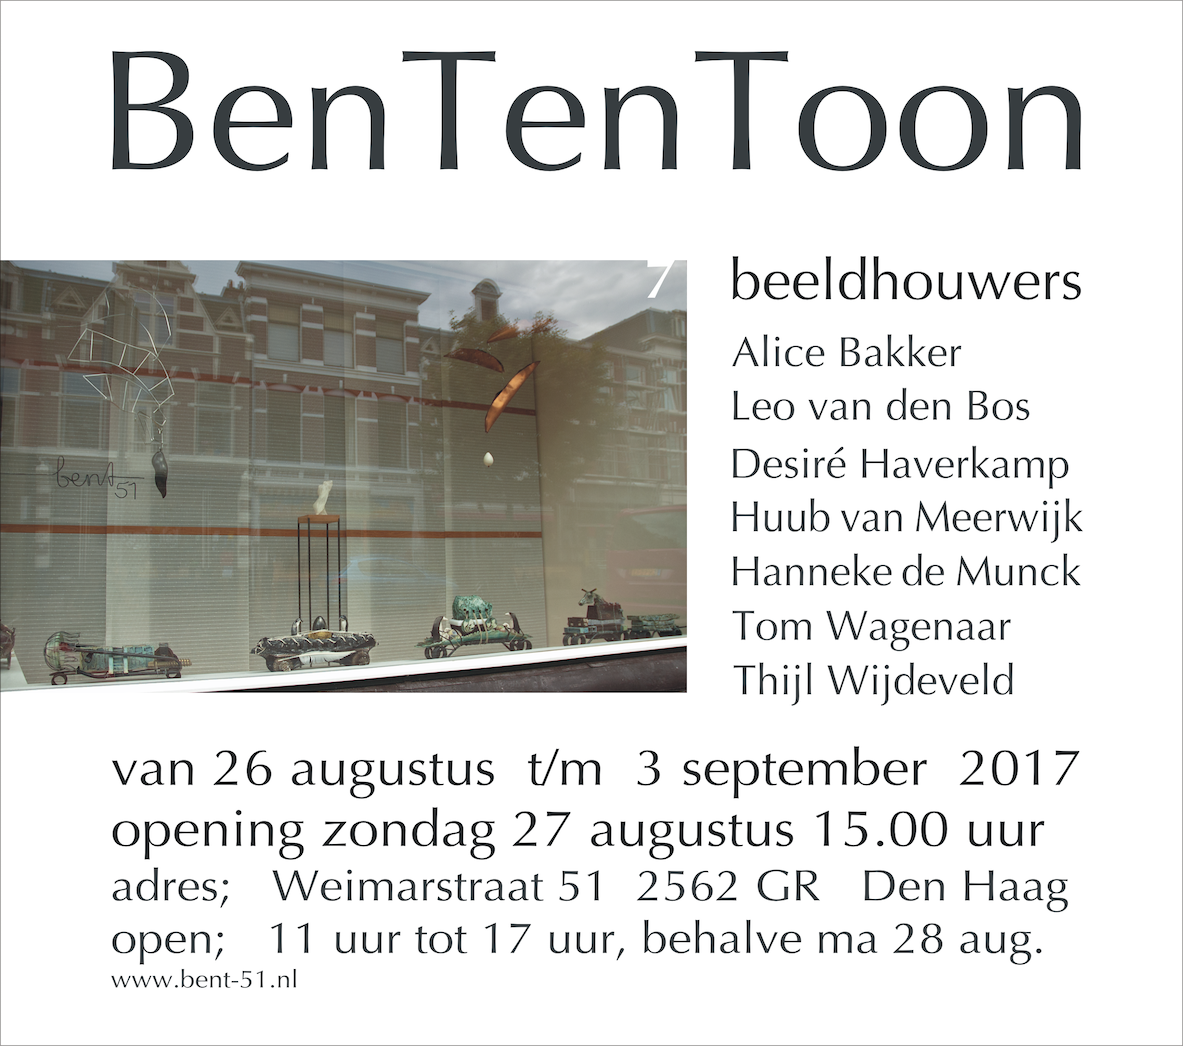 bententoon, bent-51